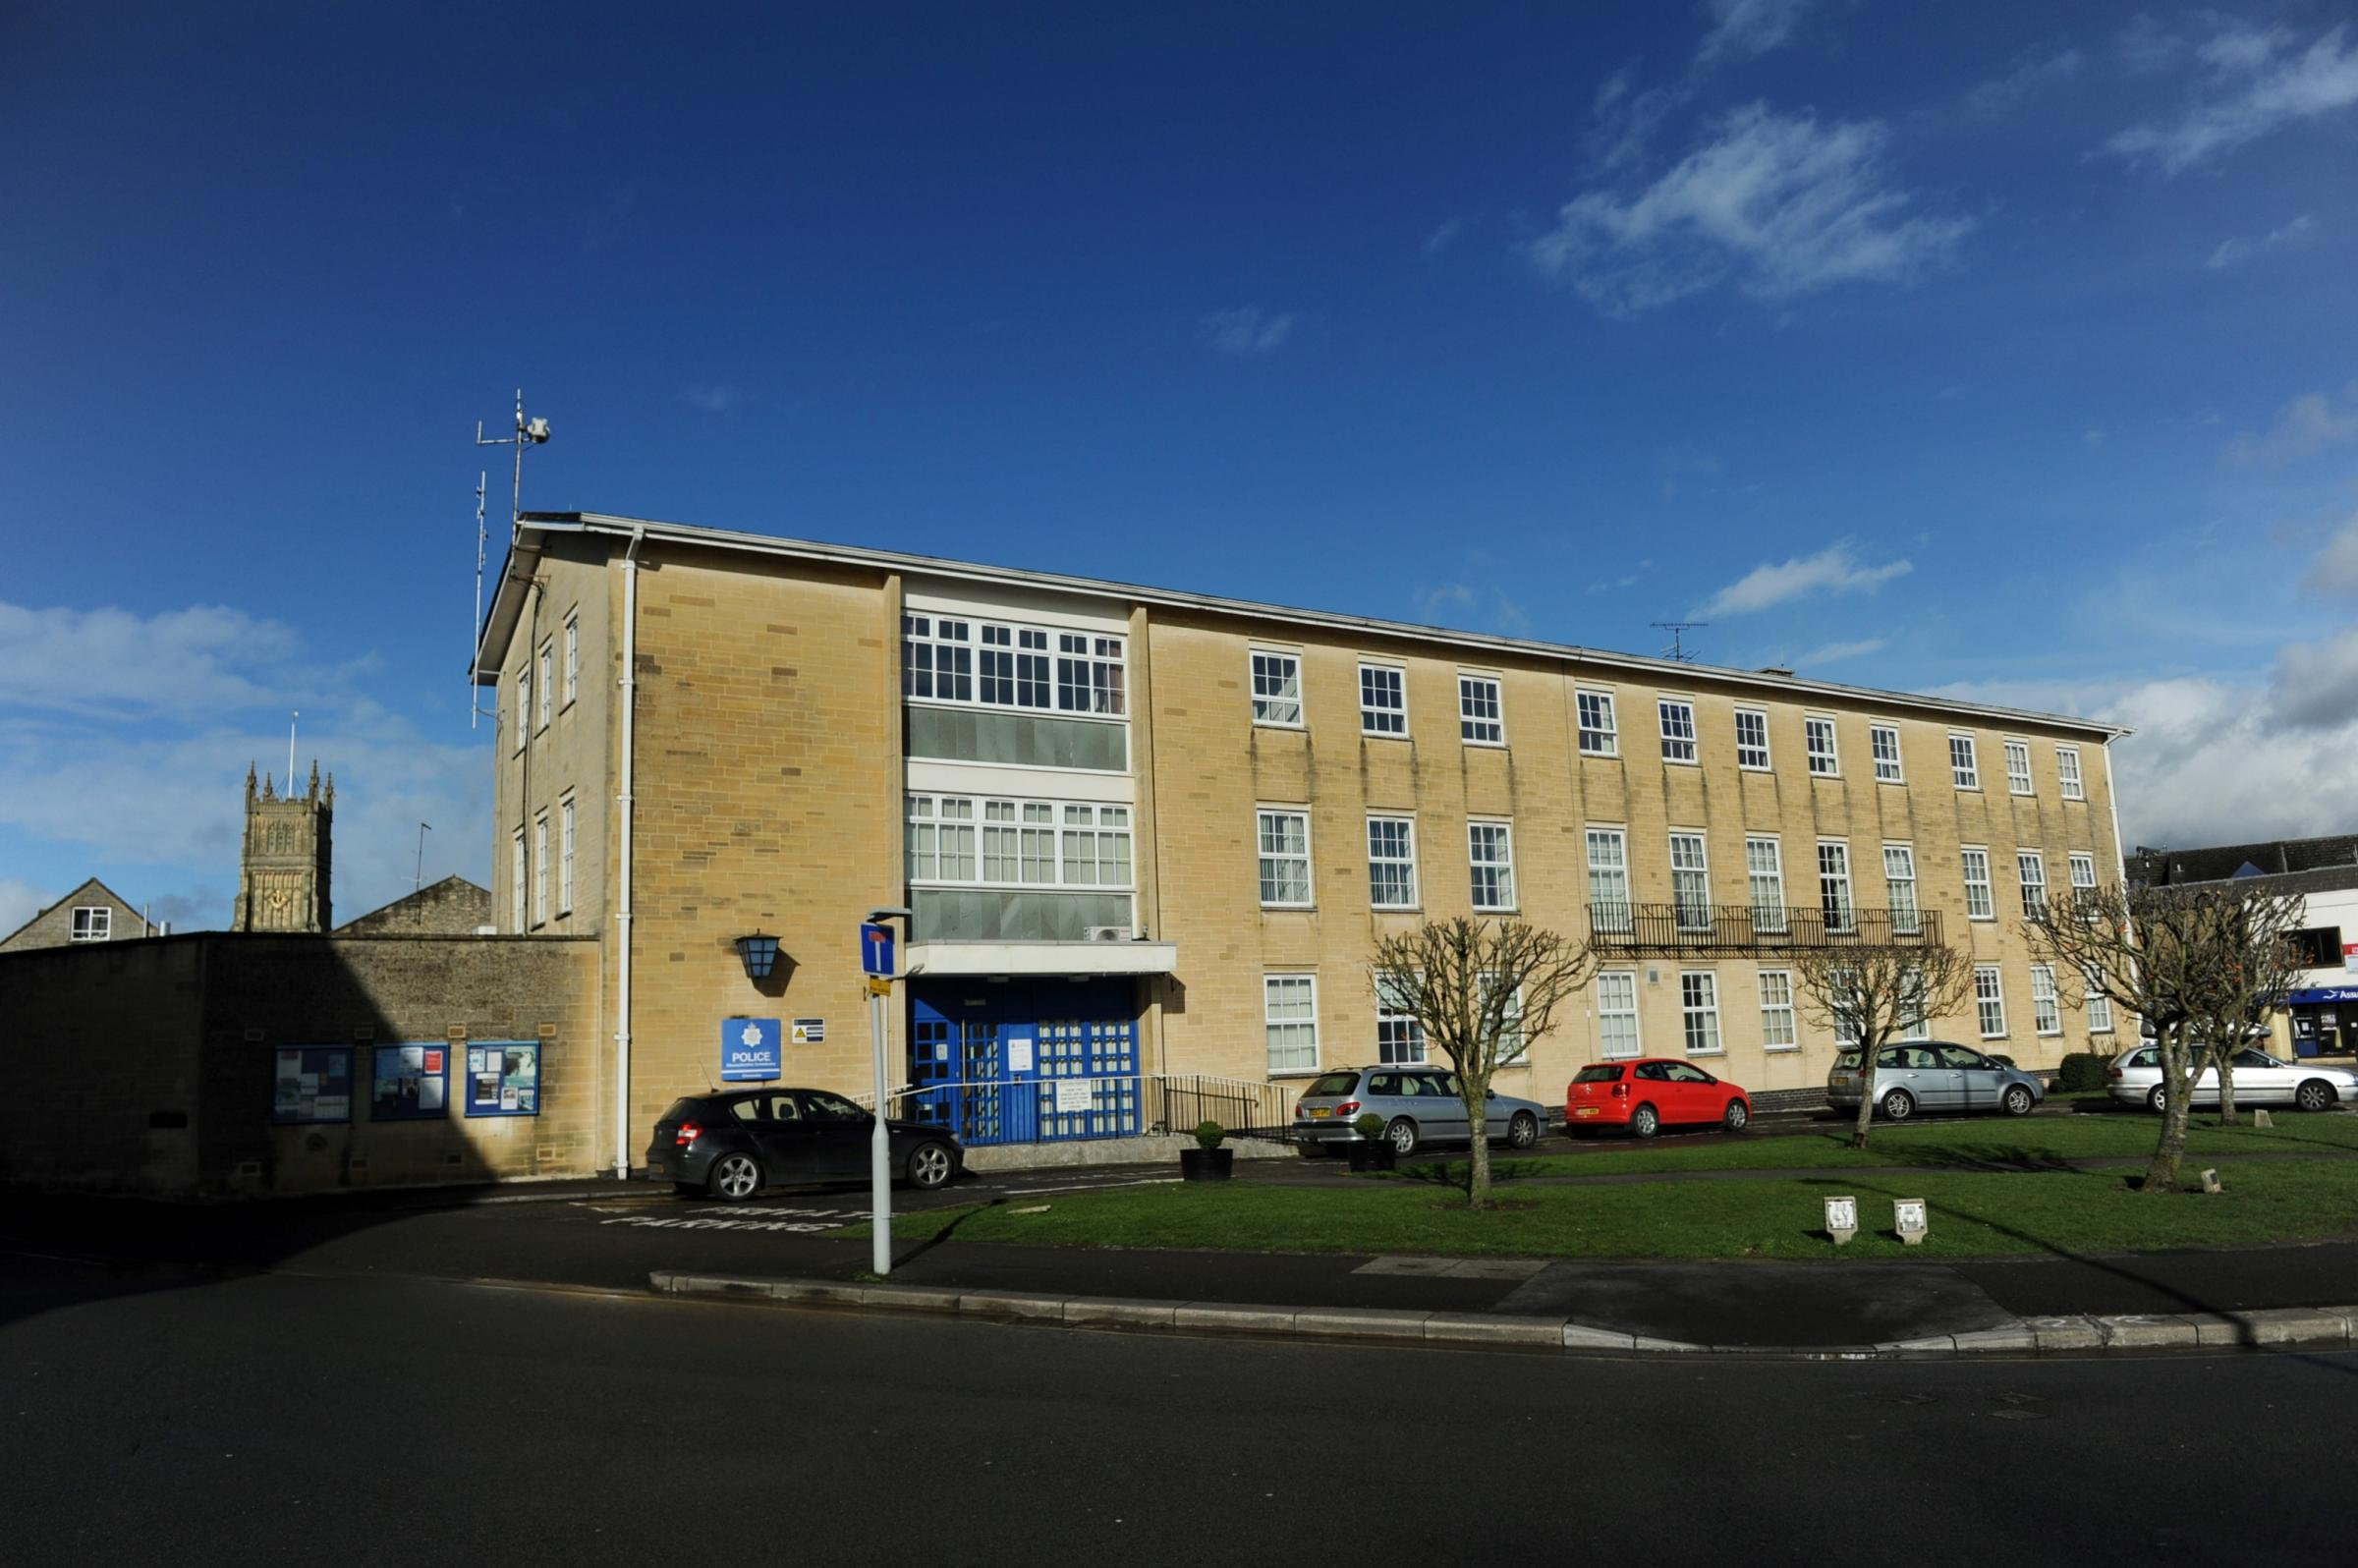 Cirencester Police Station